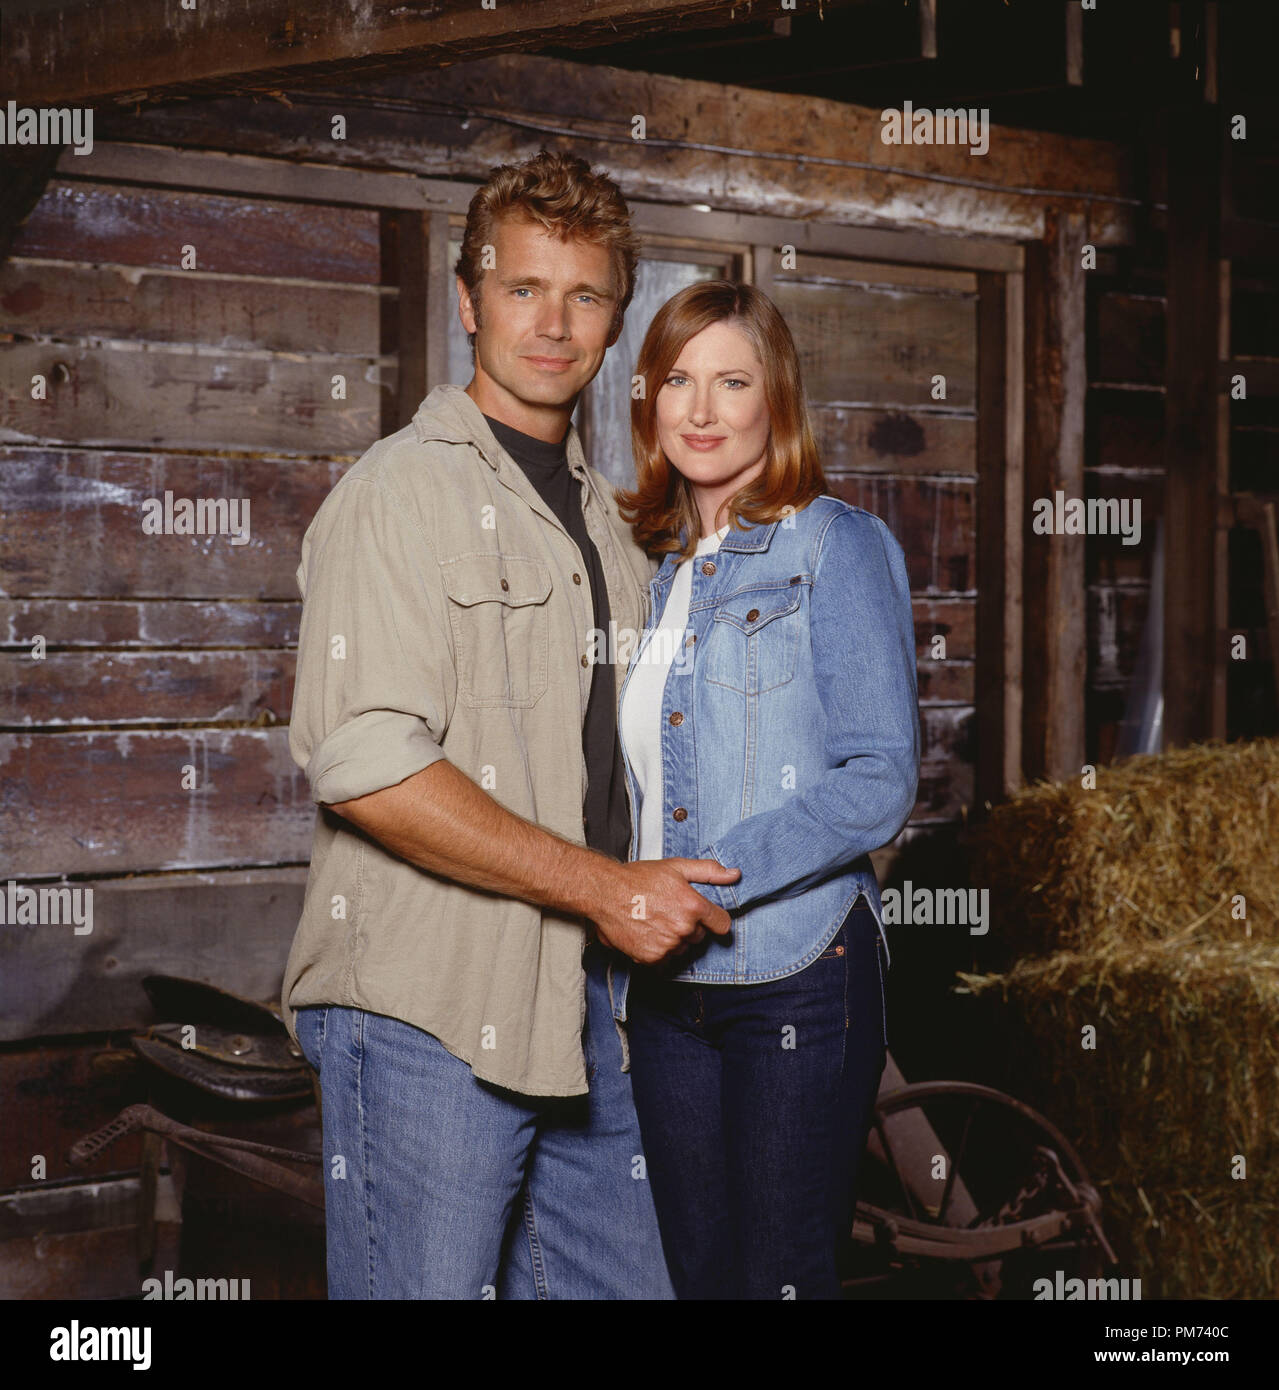 """Film Still / Publicity Still from """"Smallville"""" John Schneider, Annette O'Toole 2001 Photo credit: Kharen Hill      File Reference # 30847291THA  For Editorial Use Only -  All Rights Reserved Stock Photo"""